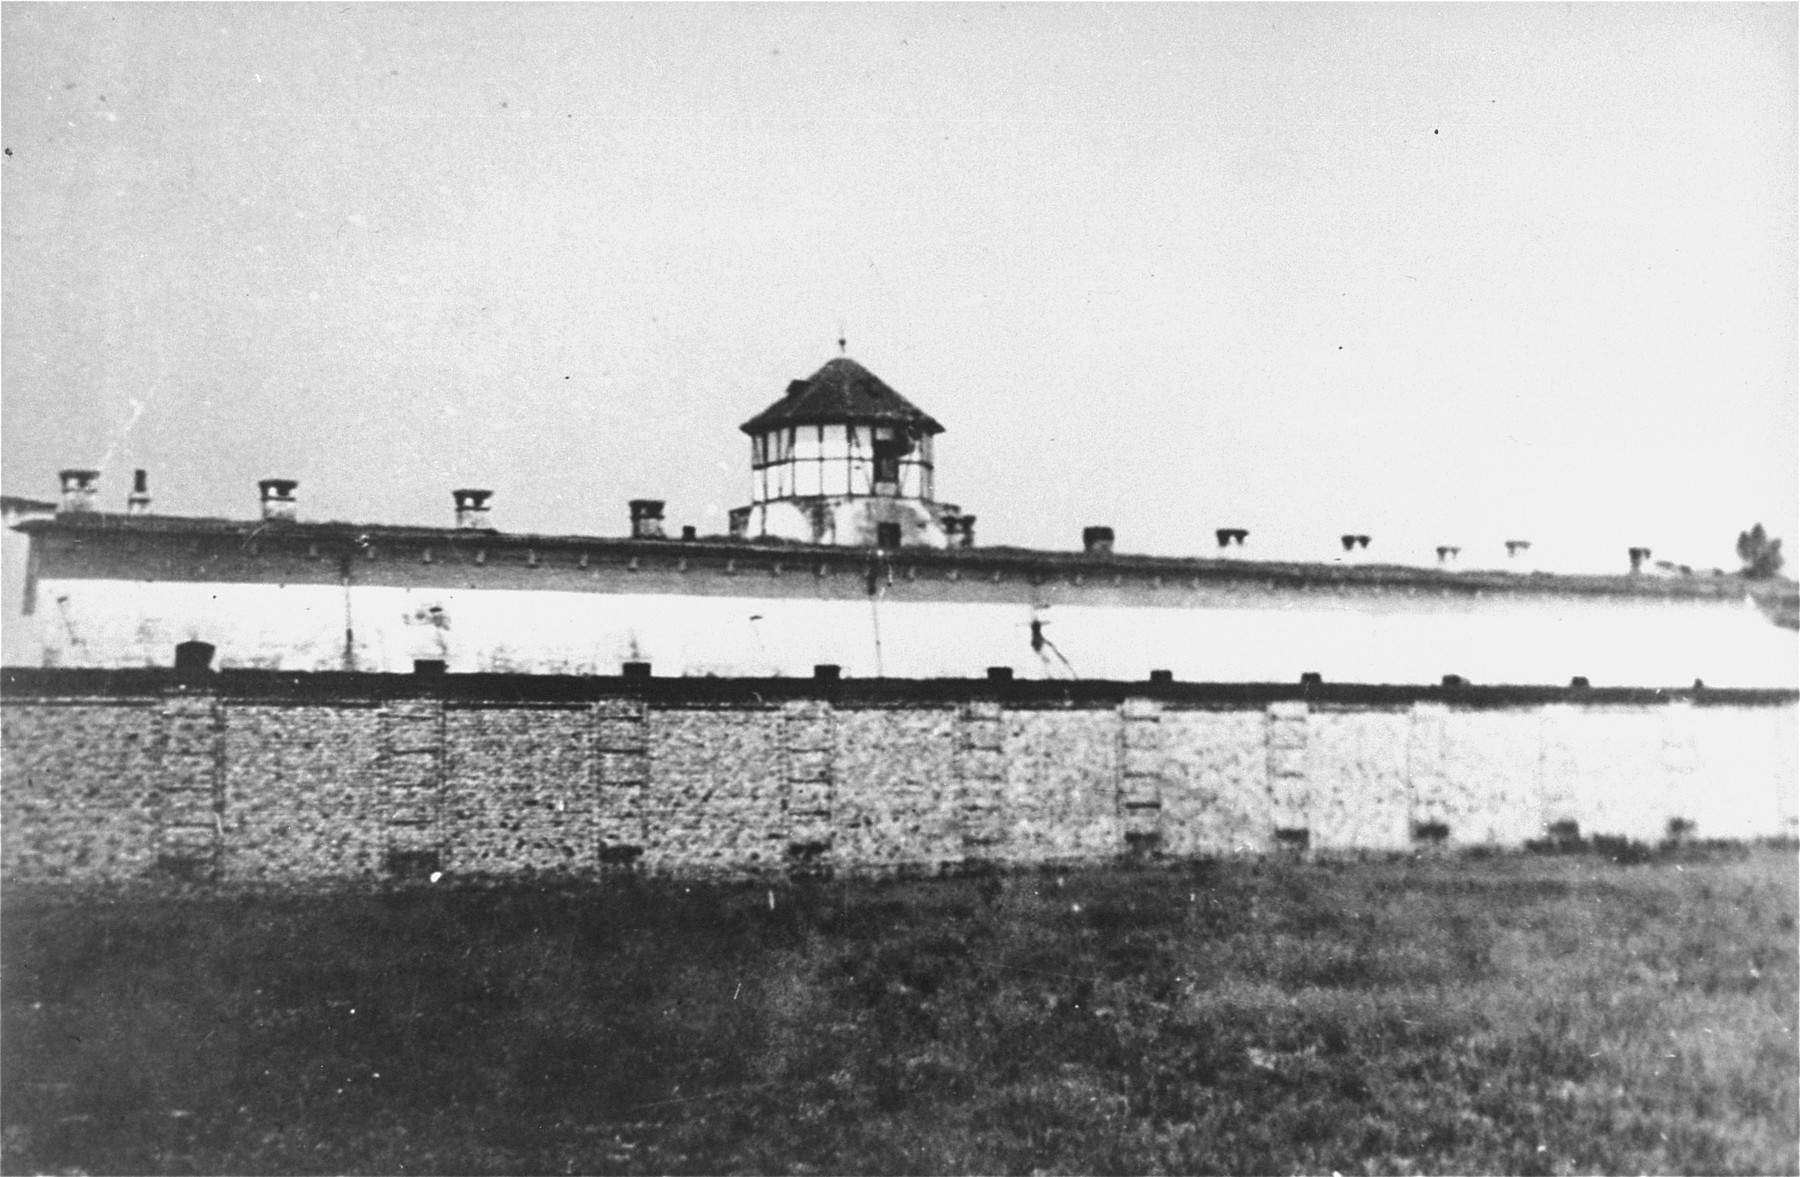 View of the Stara Gradiska concentration camp that was formerly an Austro-Hungarian fortress.